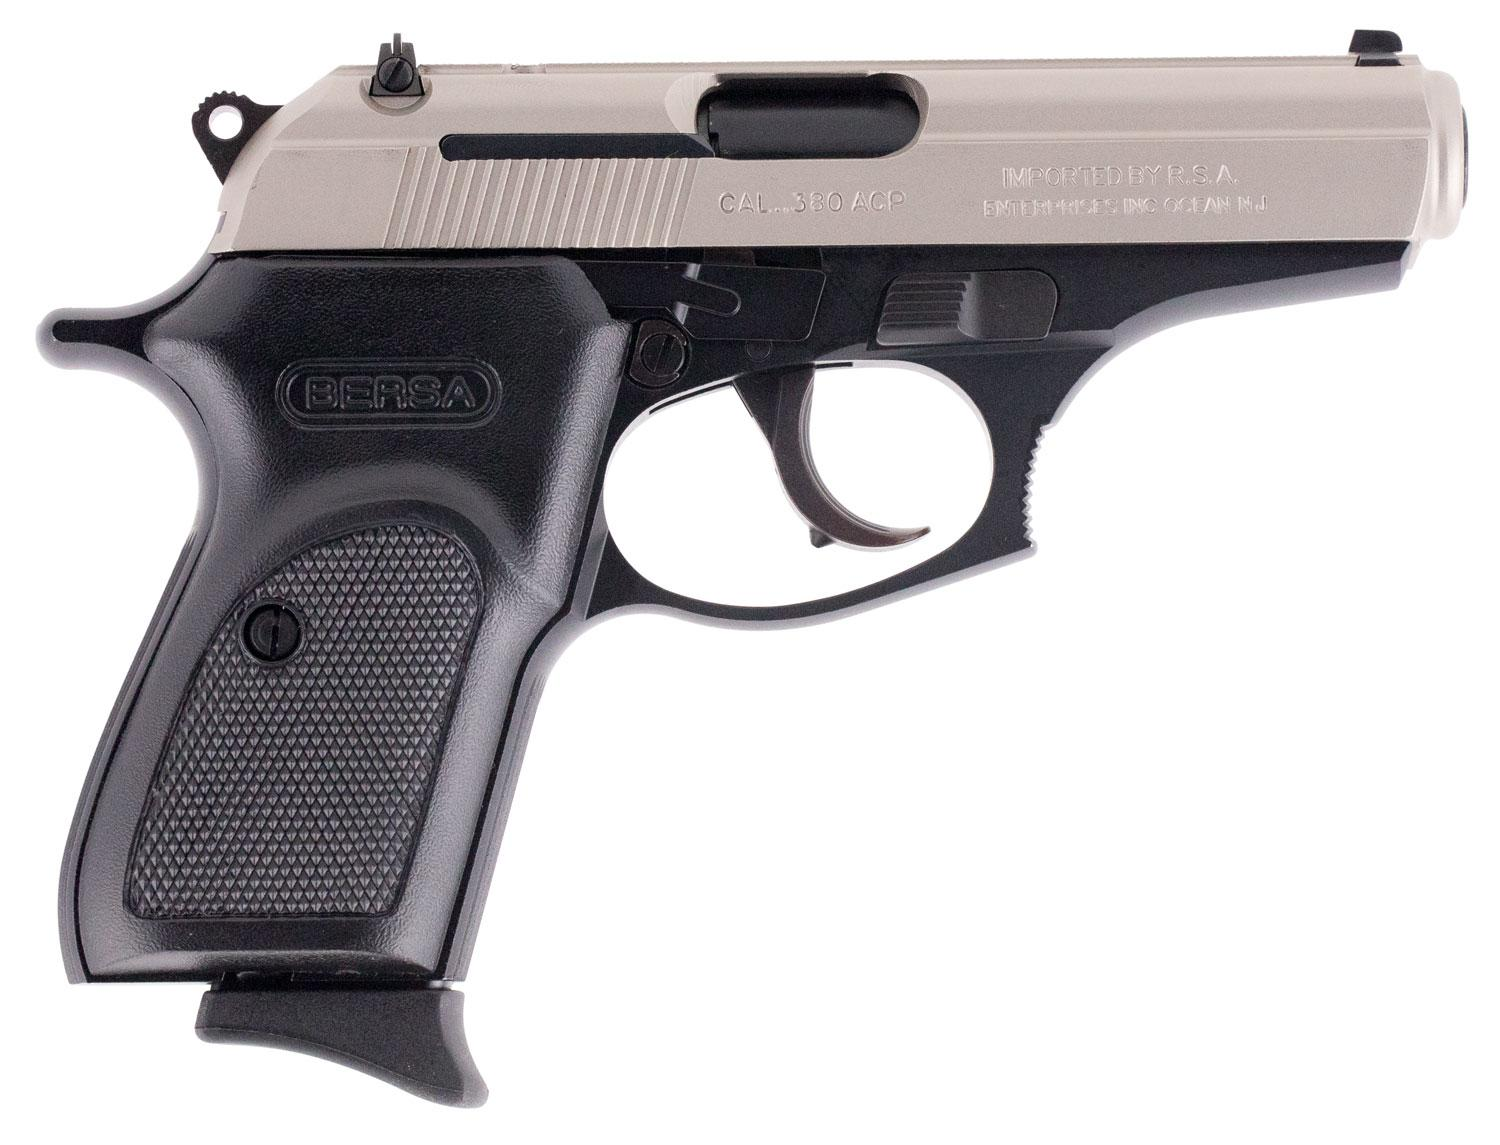 Bersa T380rdt8 Thunder 380 Reverse Duo- Tone Single/Double 380 Automatic Colt Pistol (Acp) 3.5